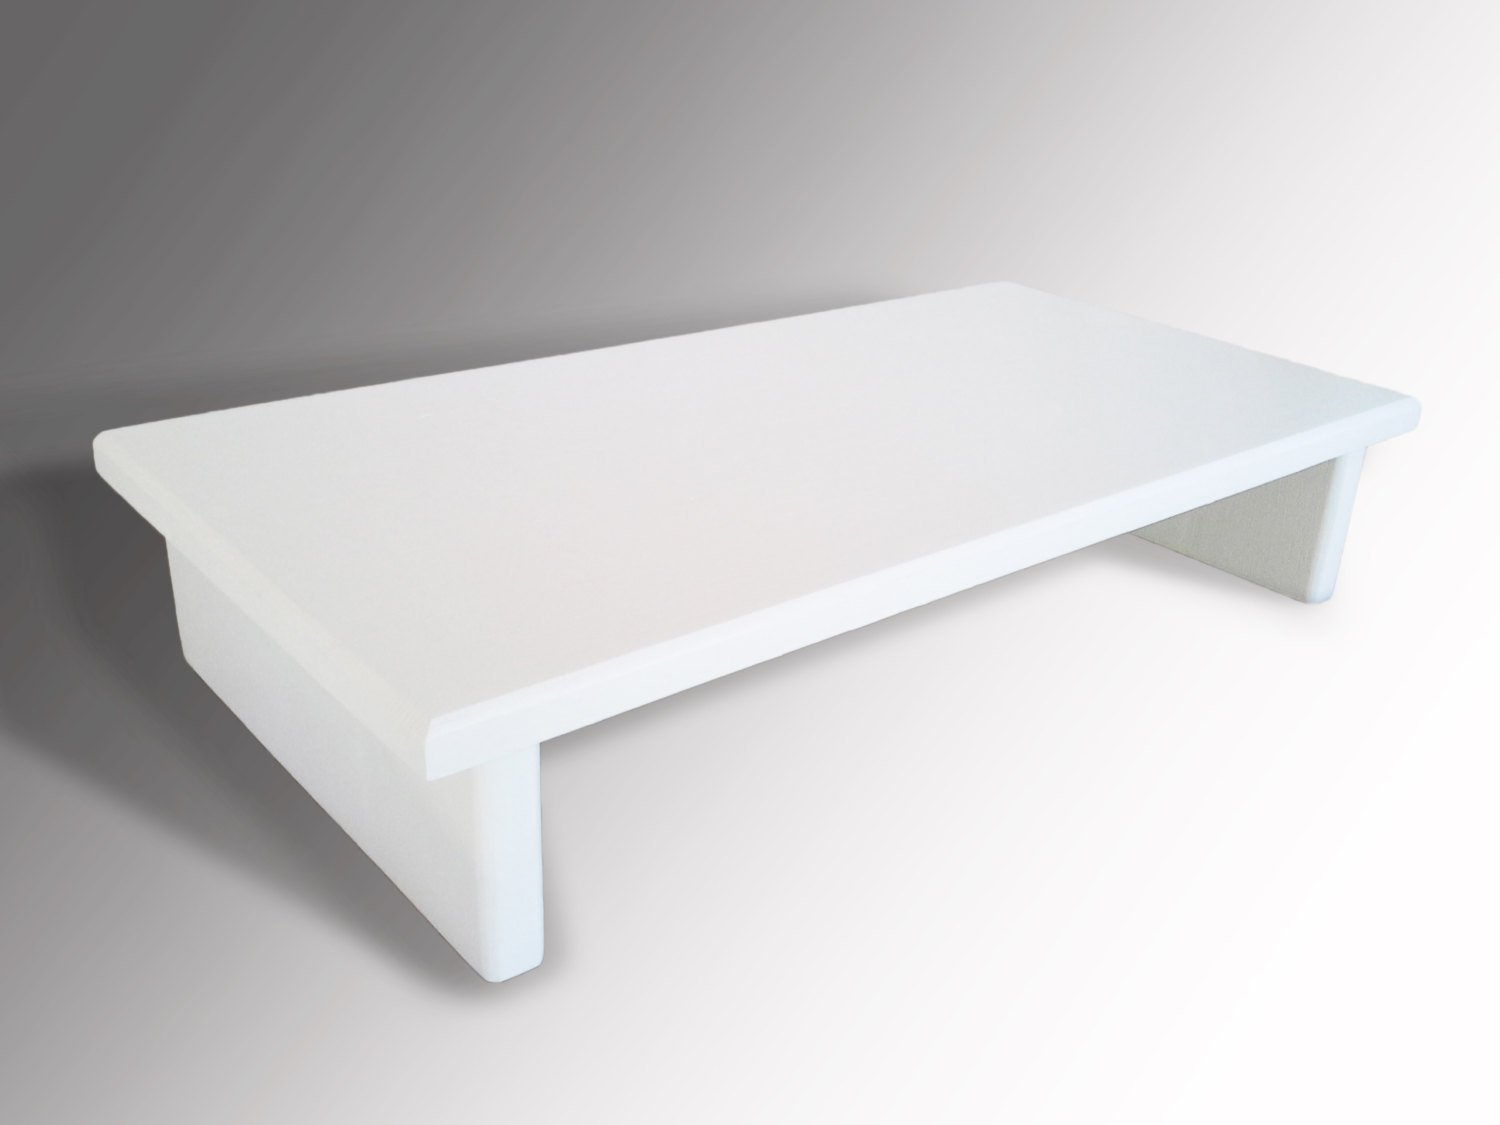 Amazon.com : Monitor Stand P3/4W18 4 Pine White Glossy Paint 18 X 11.5 X  4.75 TV Wood Shelf Riser Furniture Desk Assembled Made In USA NEW : Office  Products